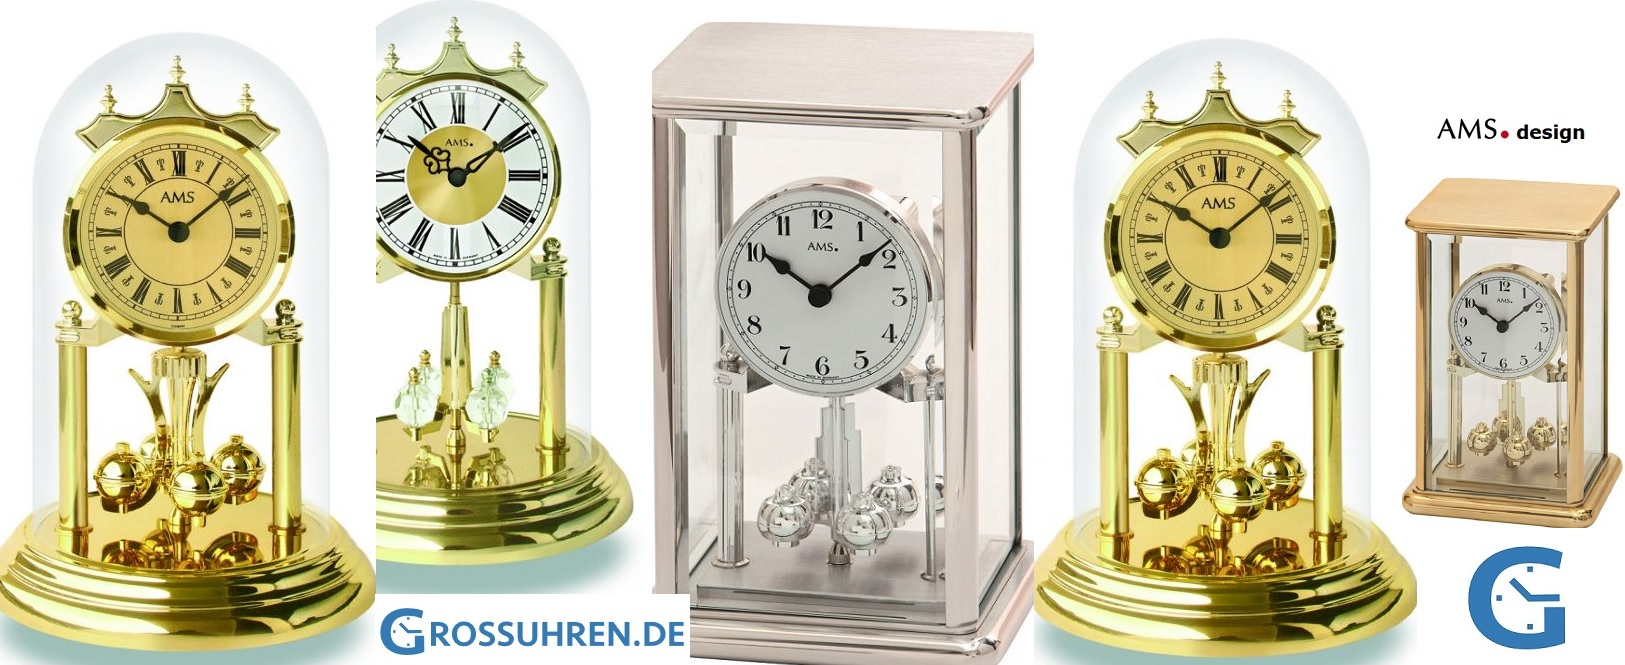 ams-year-table-clock-grossuhren.de